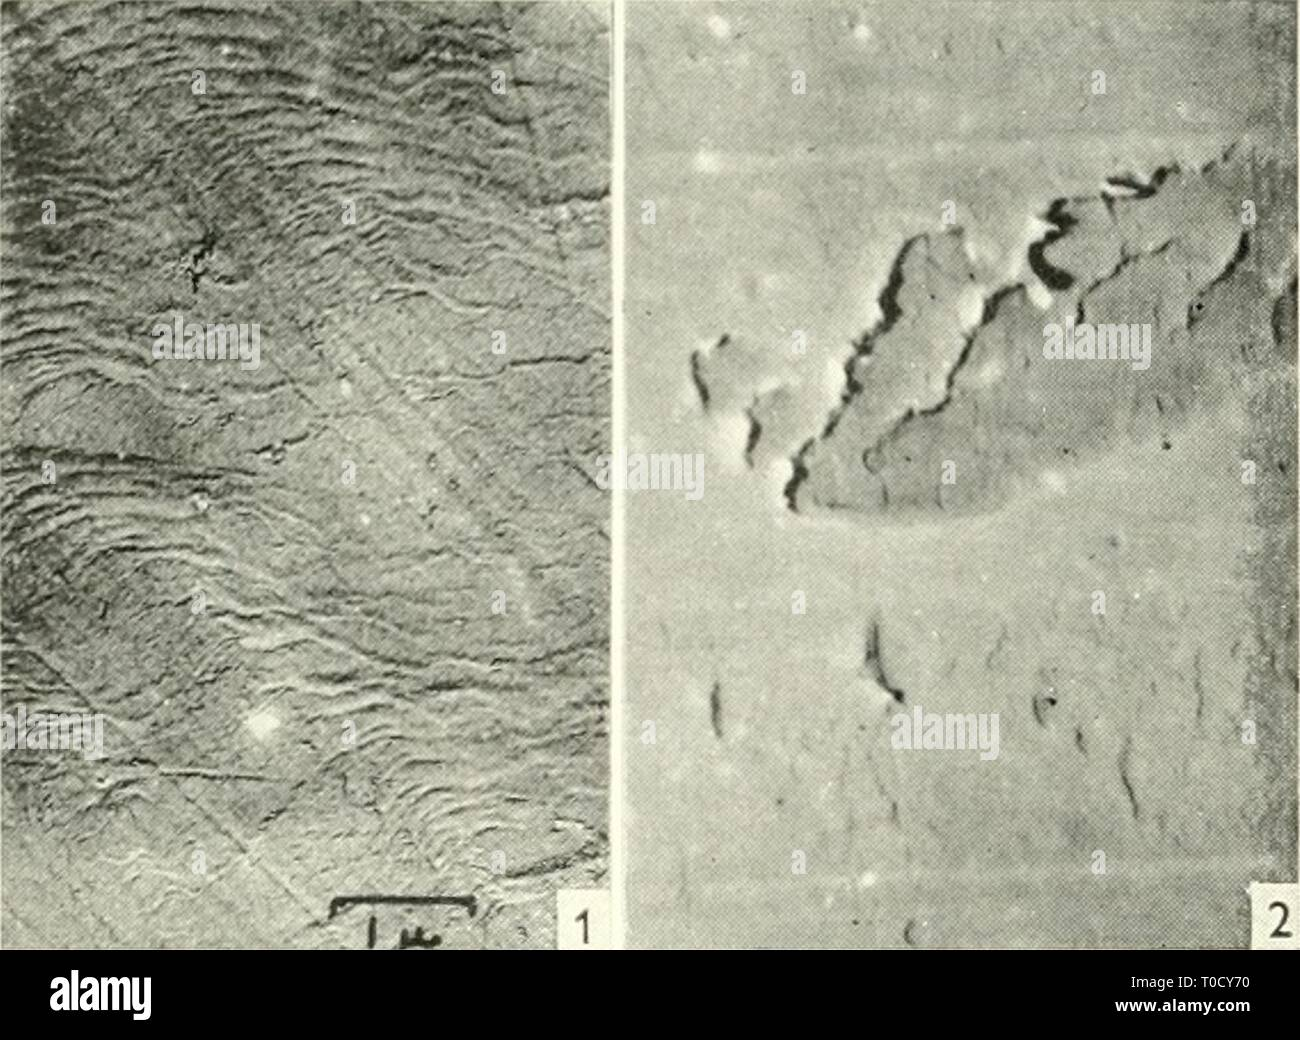 Electron microscopy; proceedings of the Electron microscopy; proceedings of the Stockholm Conference, September, 1956 electronmicrosco00euro Year: 1957  332 D. SCOTT AND H. M. SCOTT    Fig. I. Initiation of Wear Damage on Soft Steel. An area of running track near the start of a test run. Tiie material of the cylinder is E.N.8 steel of hardness aproximately 200 V.P.N. Plastic deformation of this fairly ductile material is evident, also small areas of surface damage produced by the displacement of material. Magnification 7500. Fig. 2. Initiation of Wear Damage on Hard Steel. Initial damage to th - Stock Image